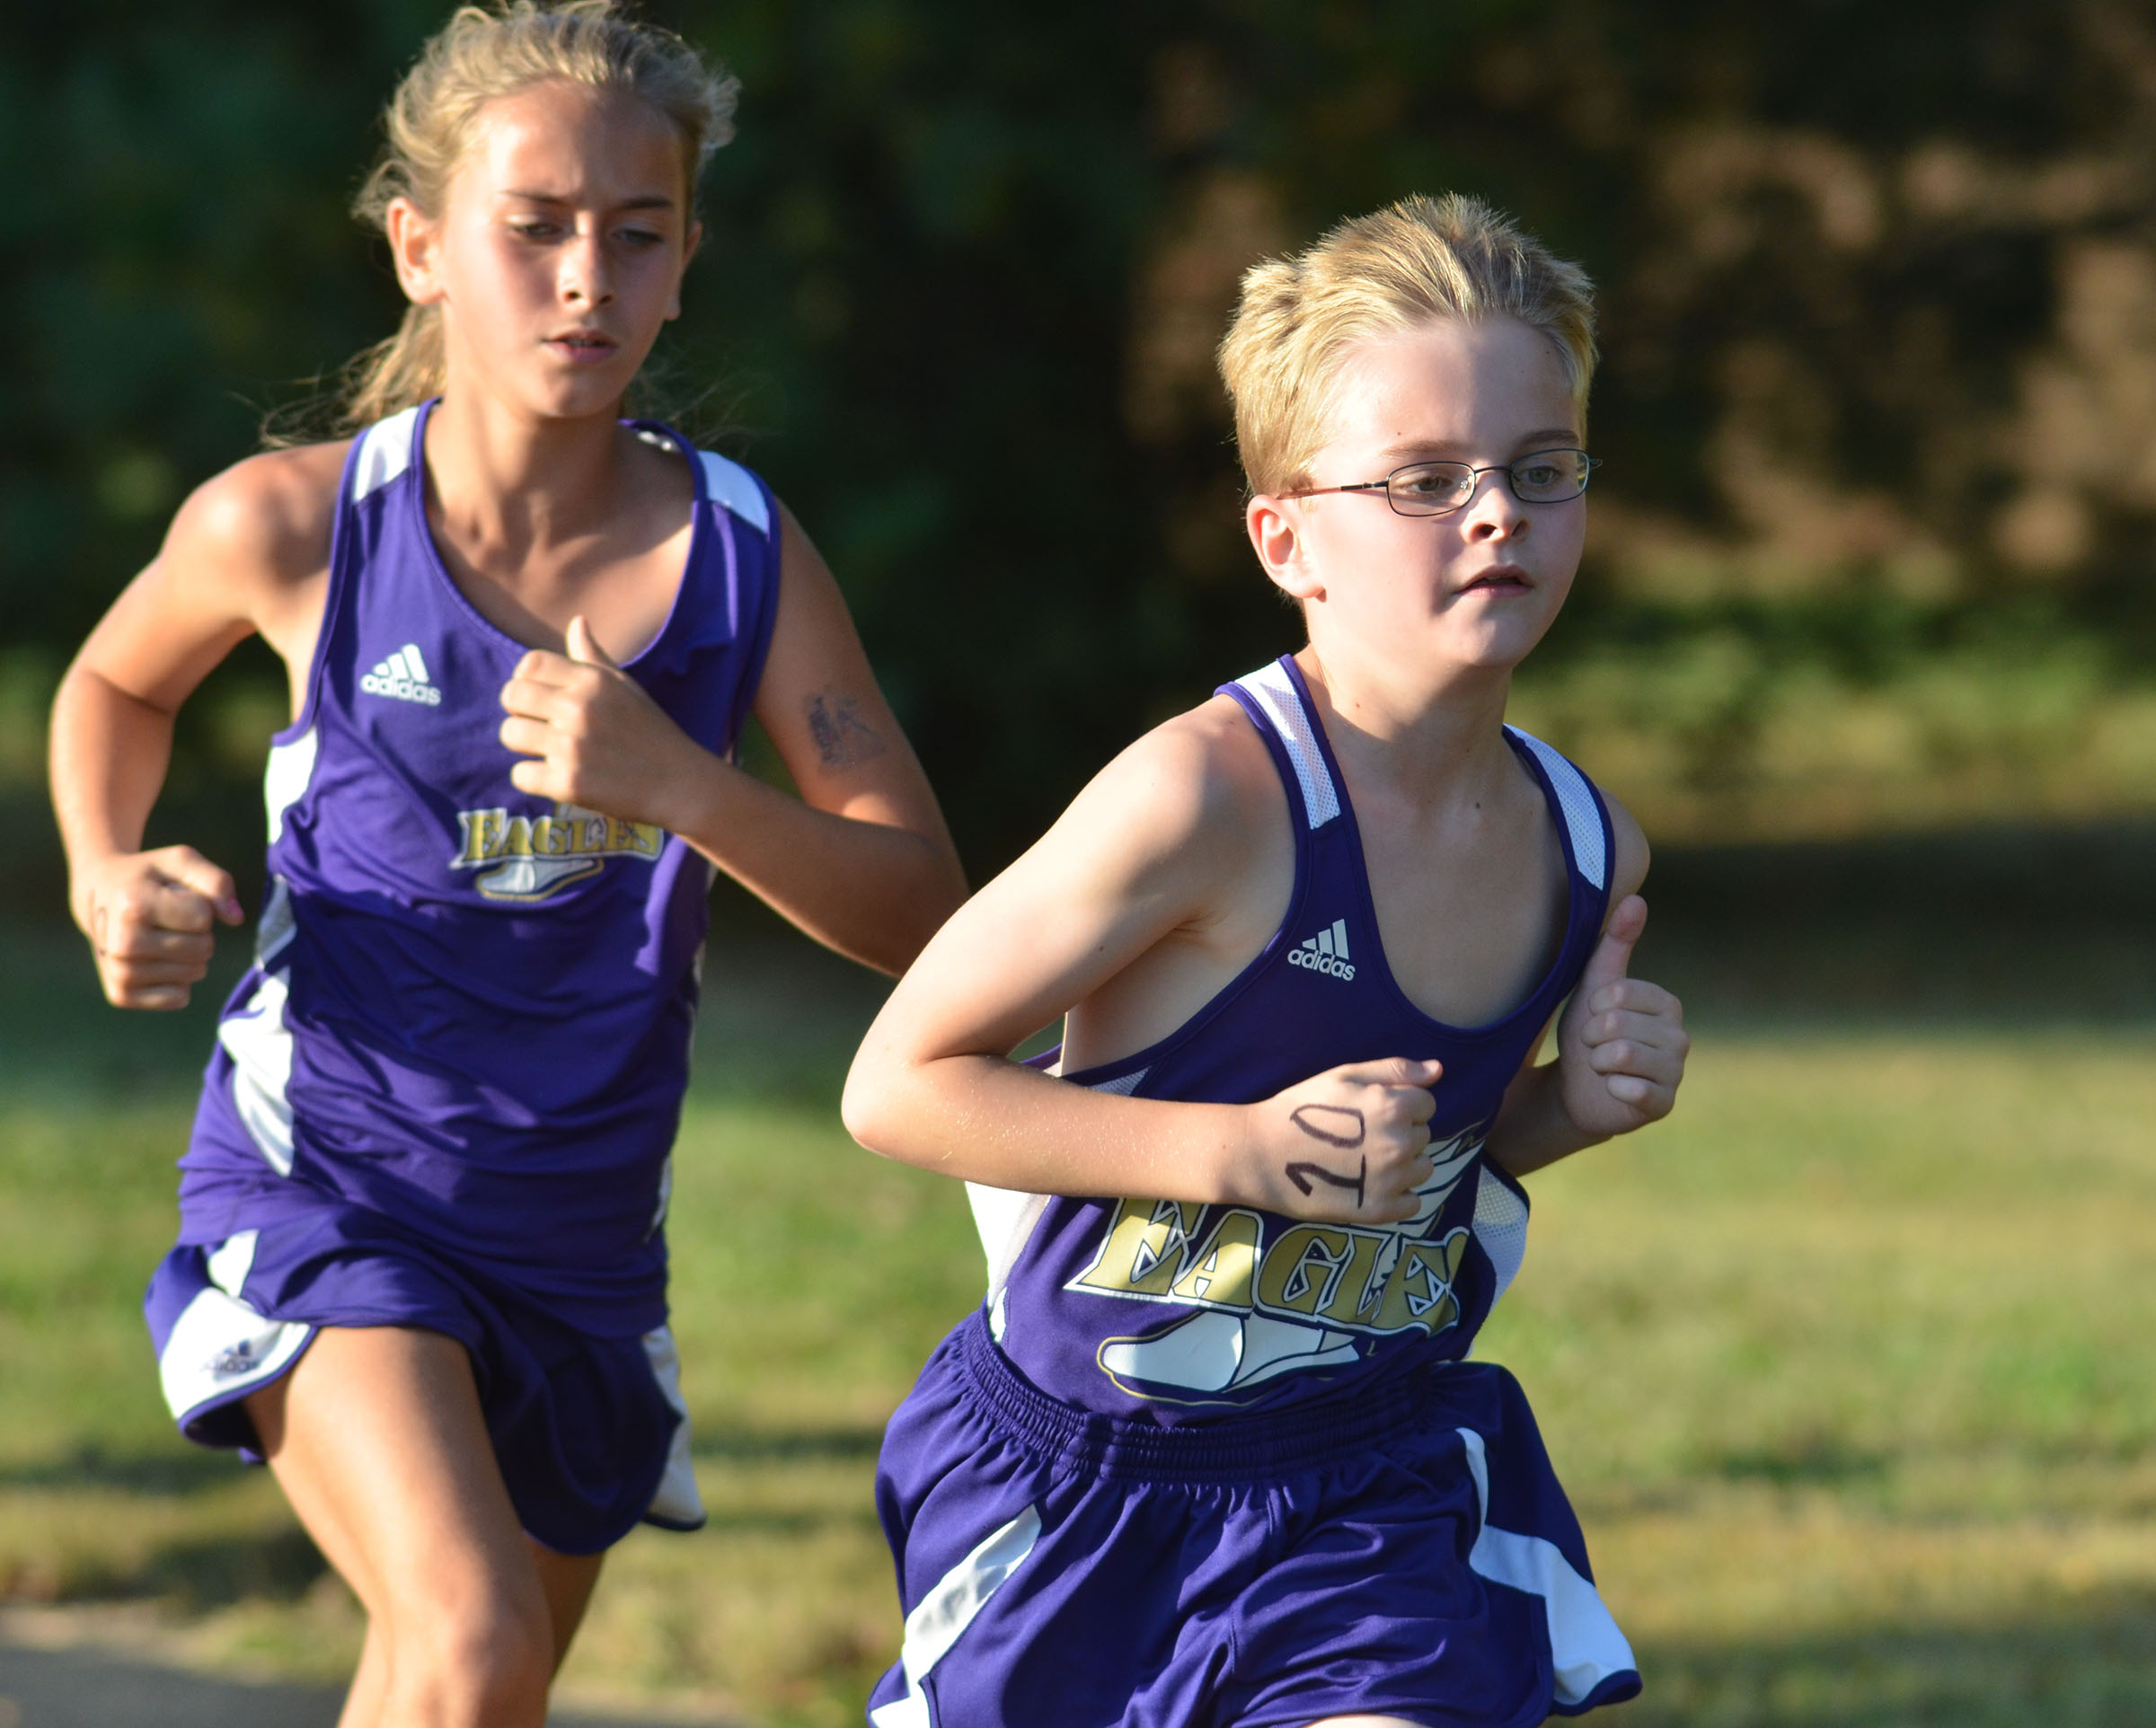 CMS fifth-grader Caleb Holt gains a slight lead on classmate Karleigh Oliver.